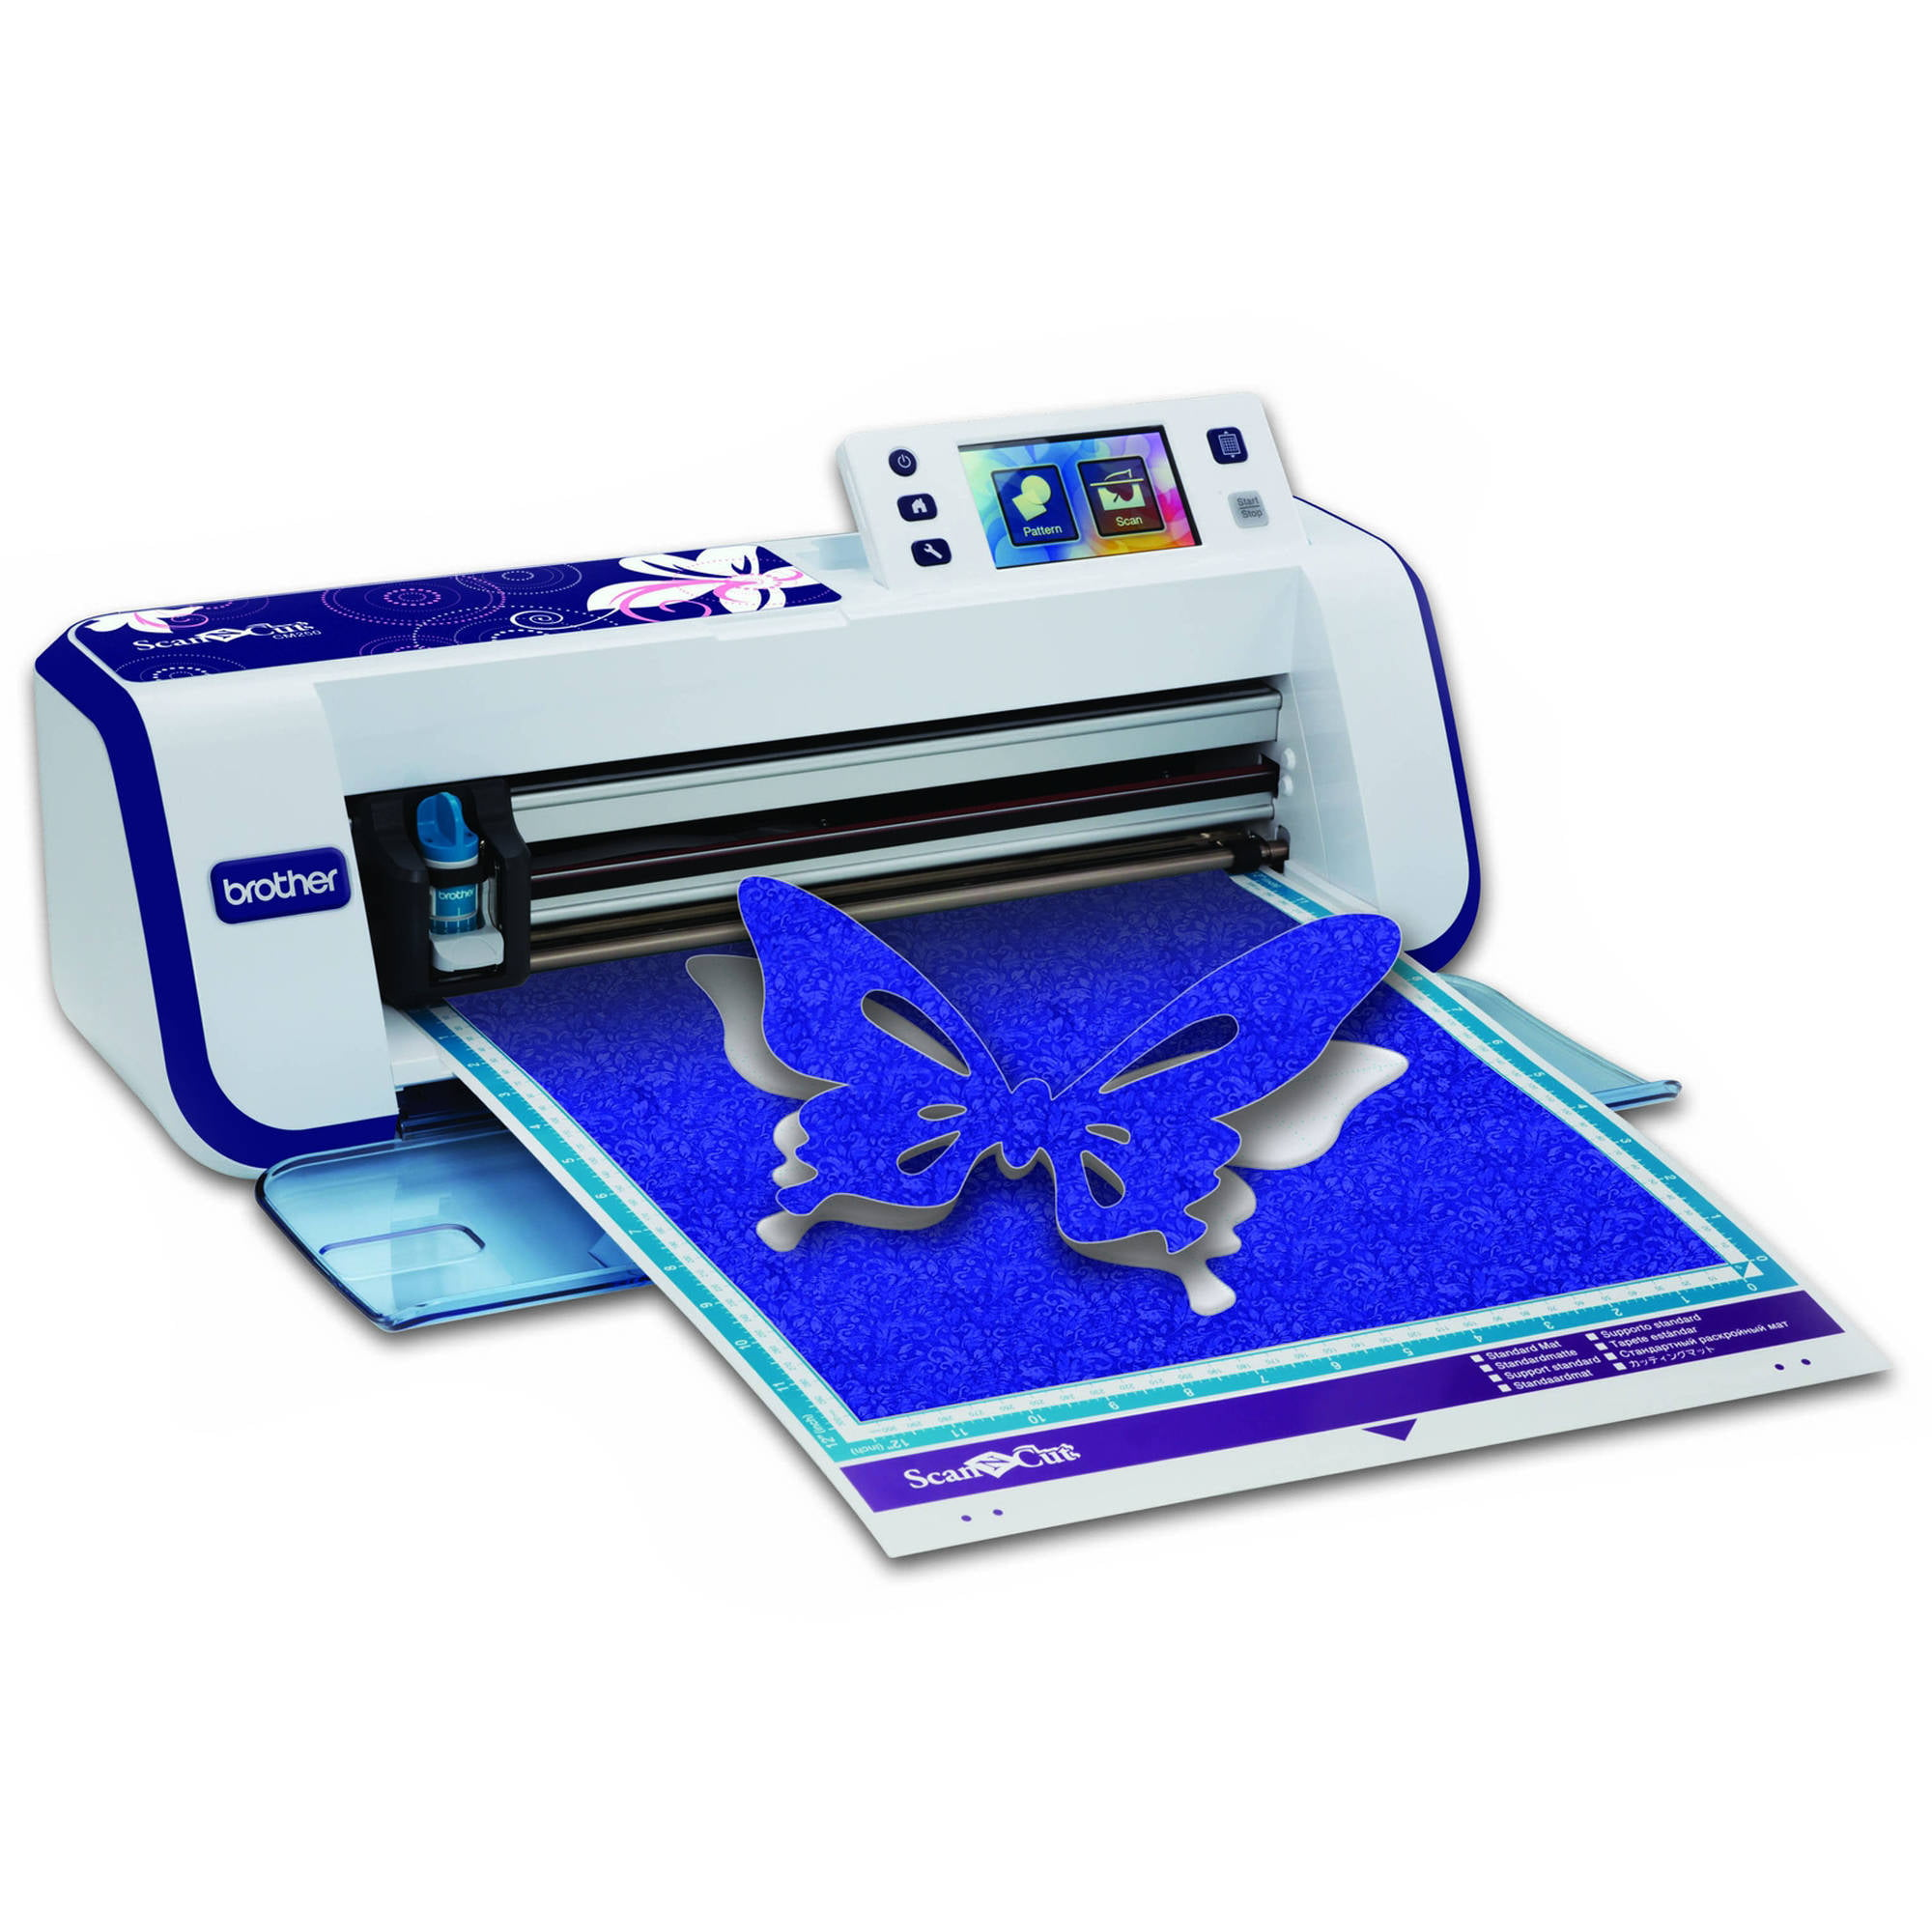 Brother CM250 Home and Hobby Cutting Machine with a Built-in Scanner and  Additional Accessories